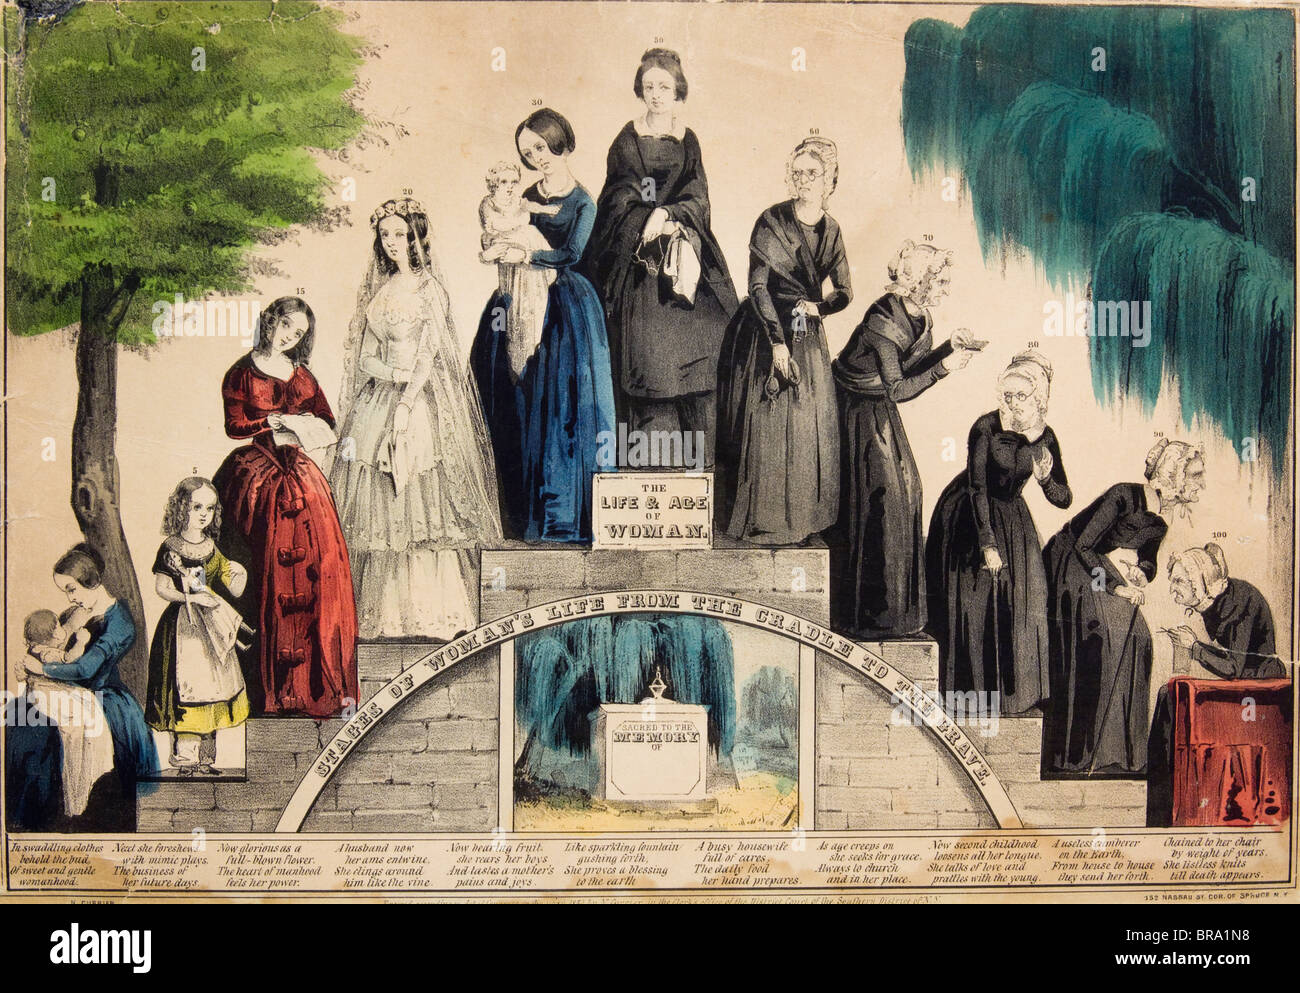 1800s 1850s CURRIER & IVES ILLUSTRATION LIFE & AGE OF WOMAN FROM BIRTH TO AGE 100 STAGES OF LIFE FROM CRADLE - Stock Image